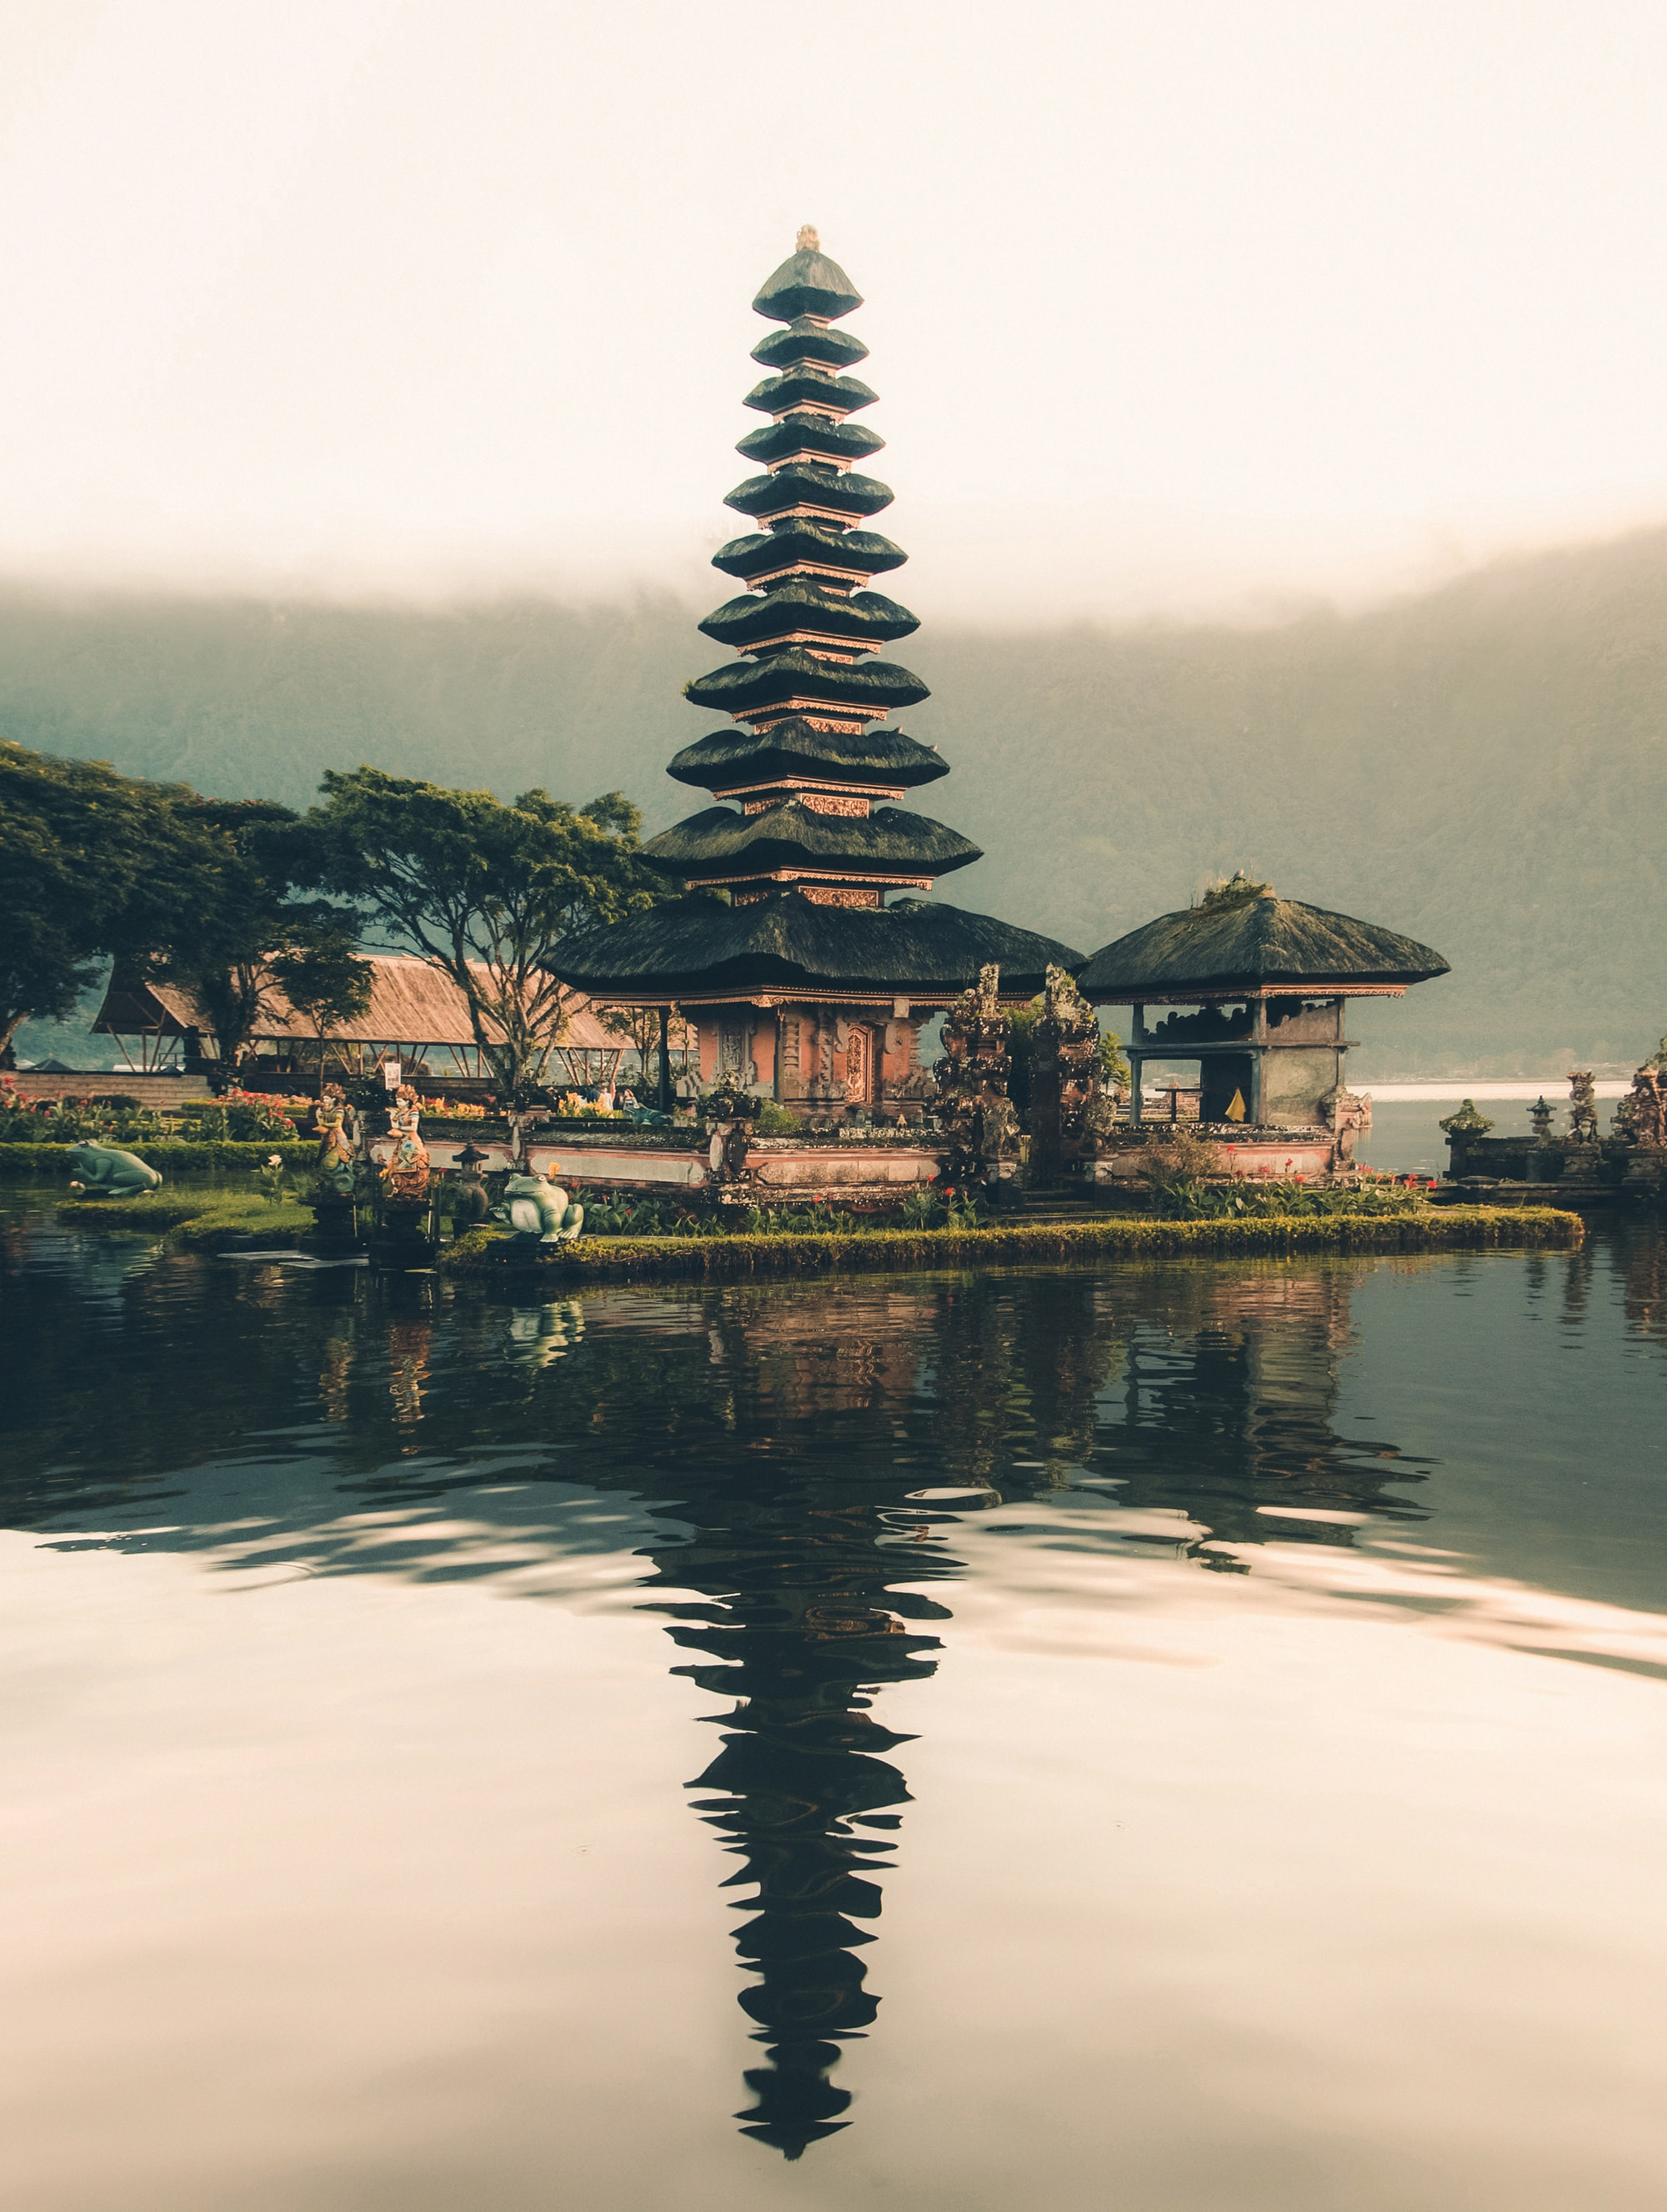 There are some places you have to see for yourself, and Bali is definitely one of them!